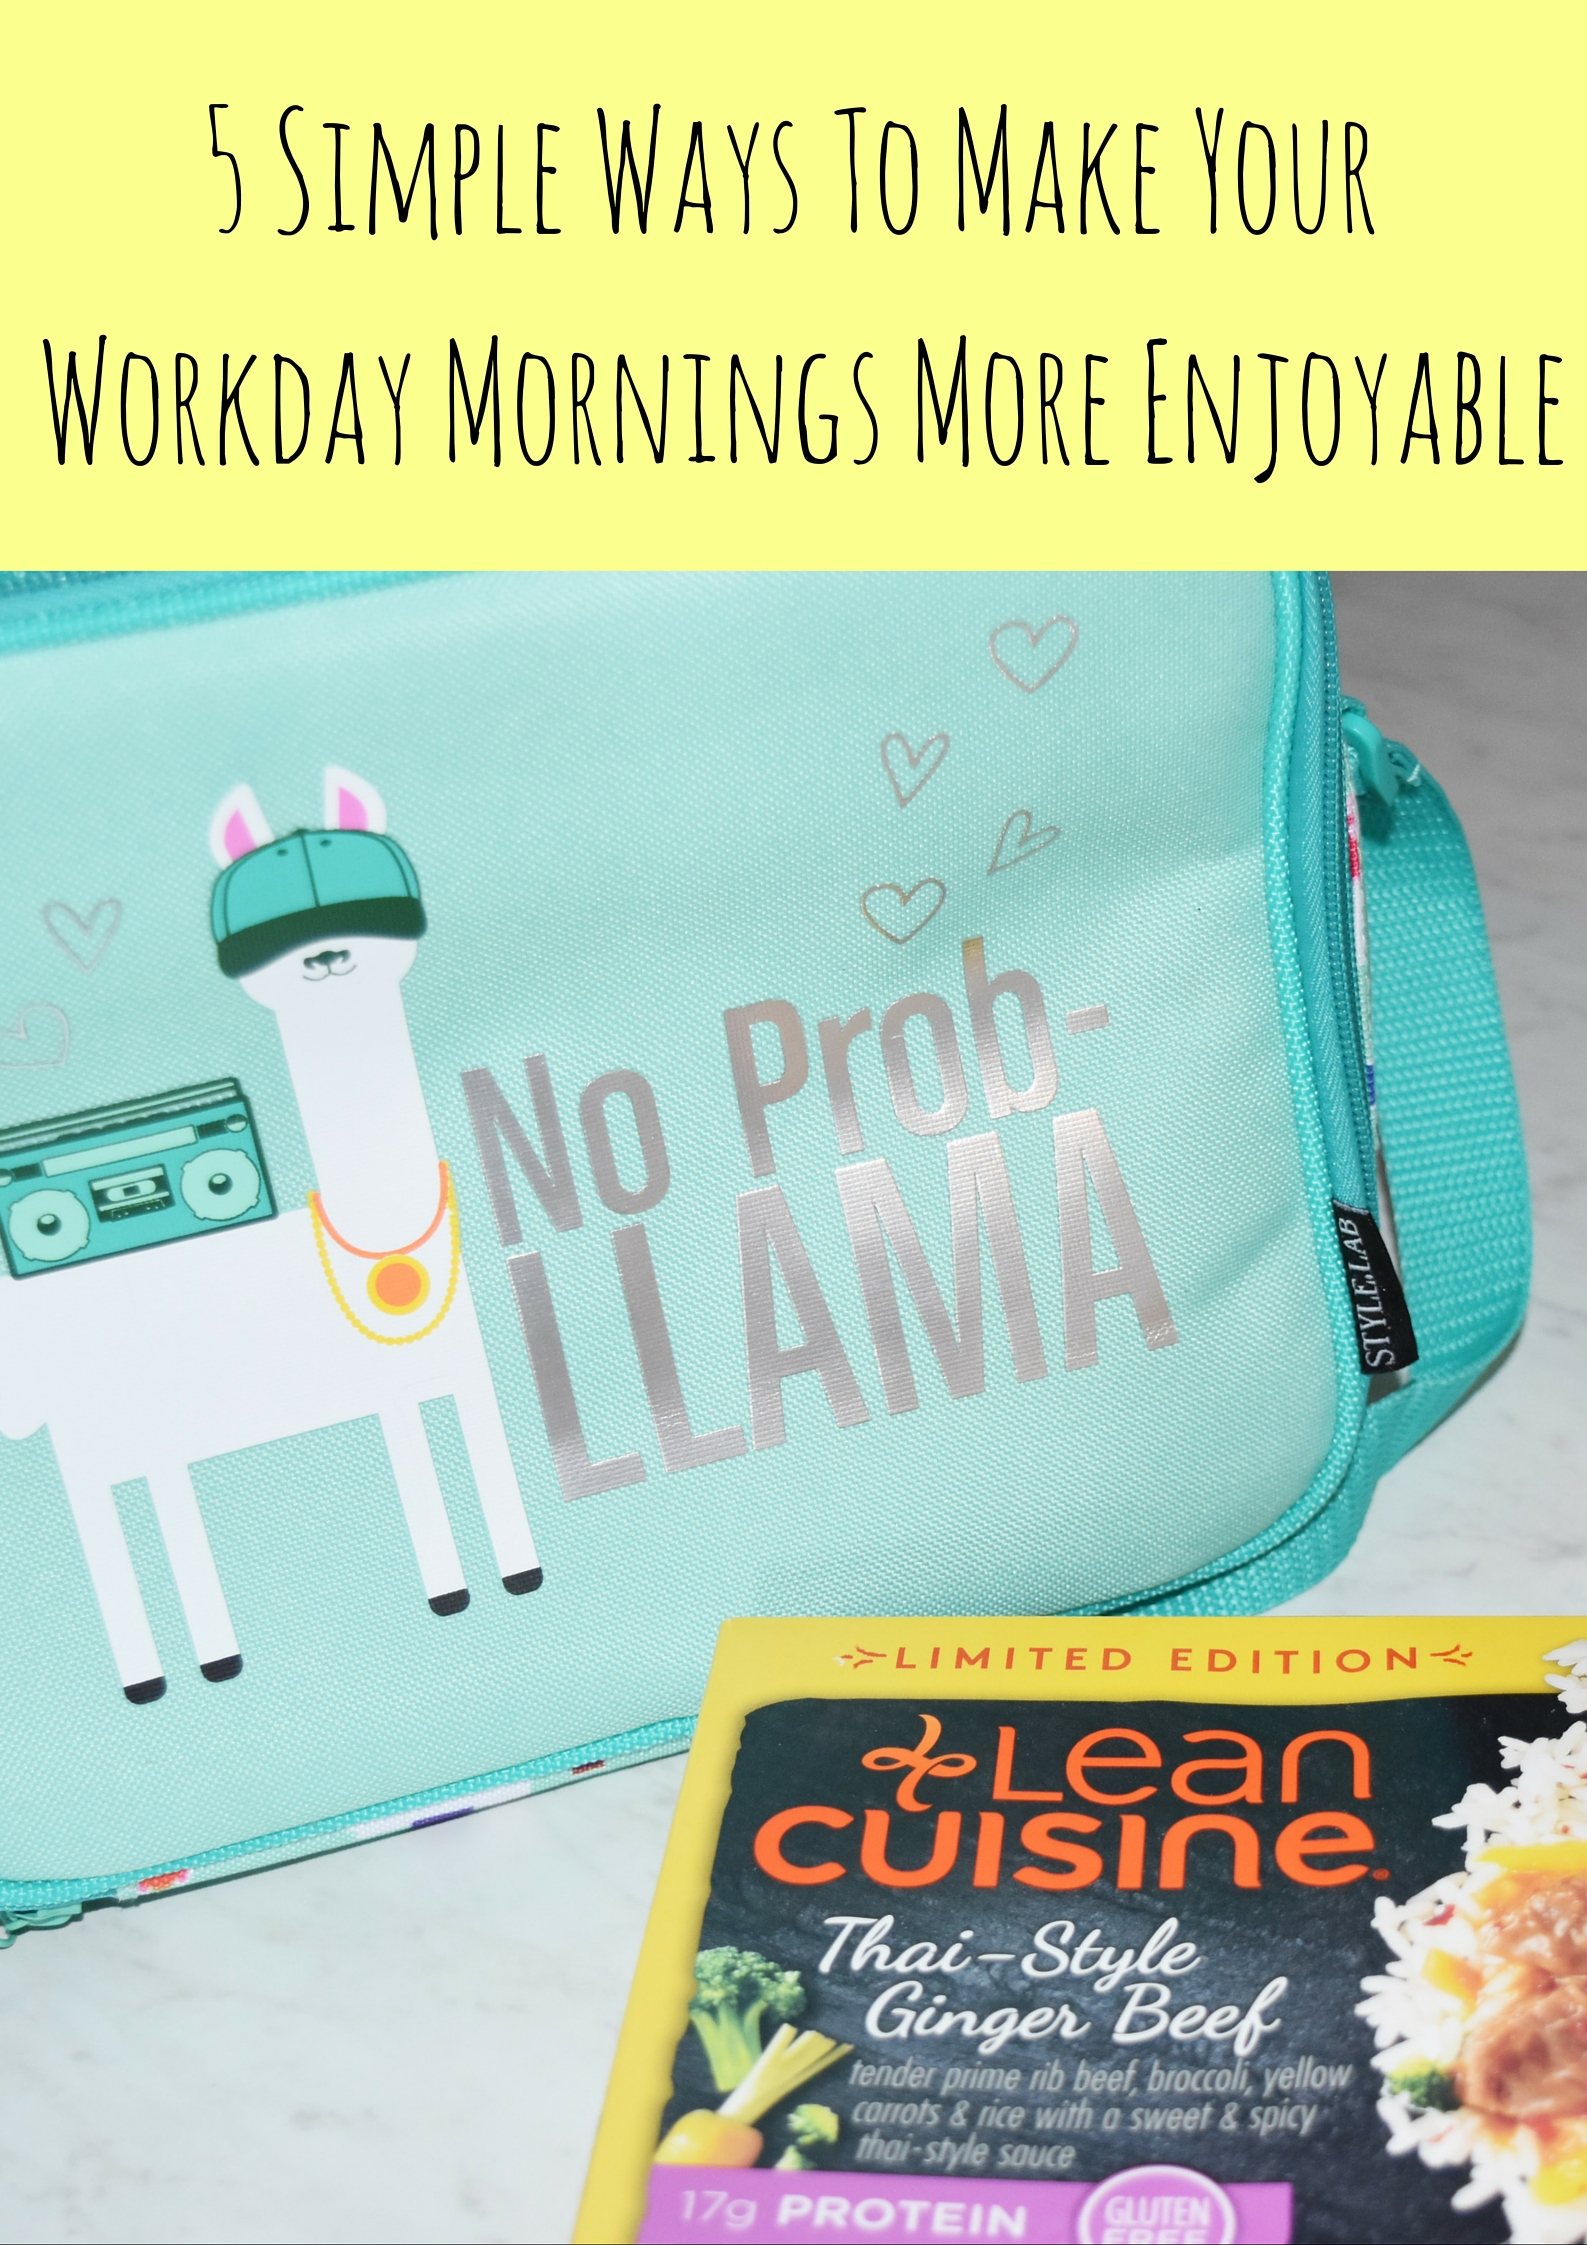 5 Simple Ways To Make Your Workday Mornings More Enjoyable